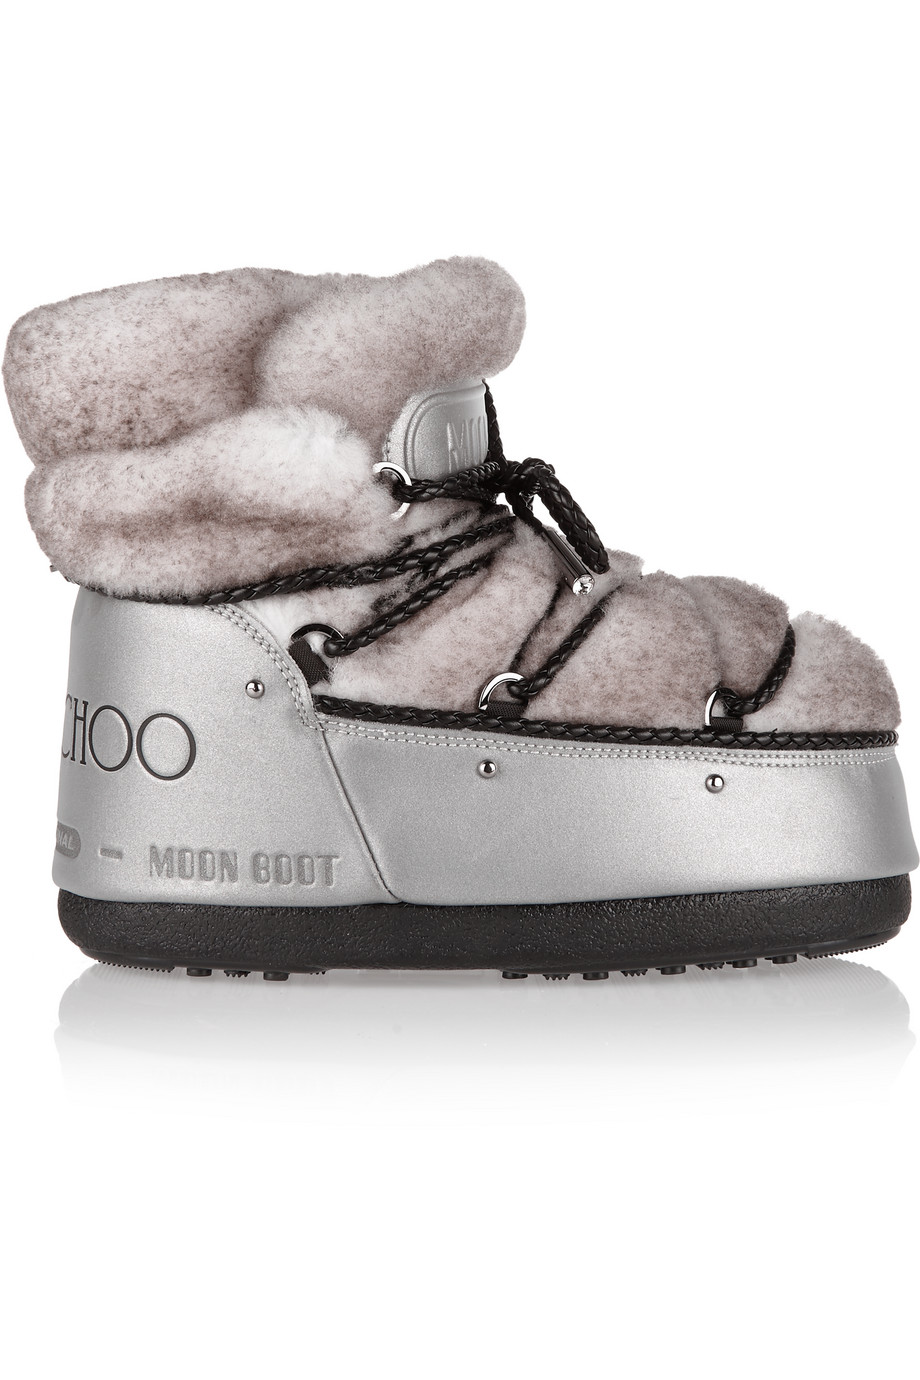 Moon Boot + Jimmy Choo MB Buzz Shearling and Shell Snow Boots, Silver/Gray, Women's, Size: 41/42